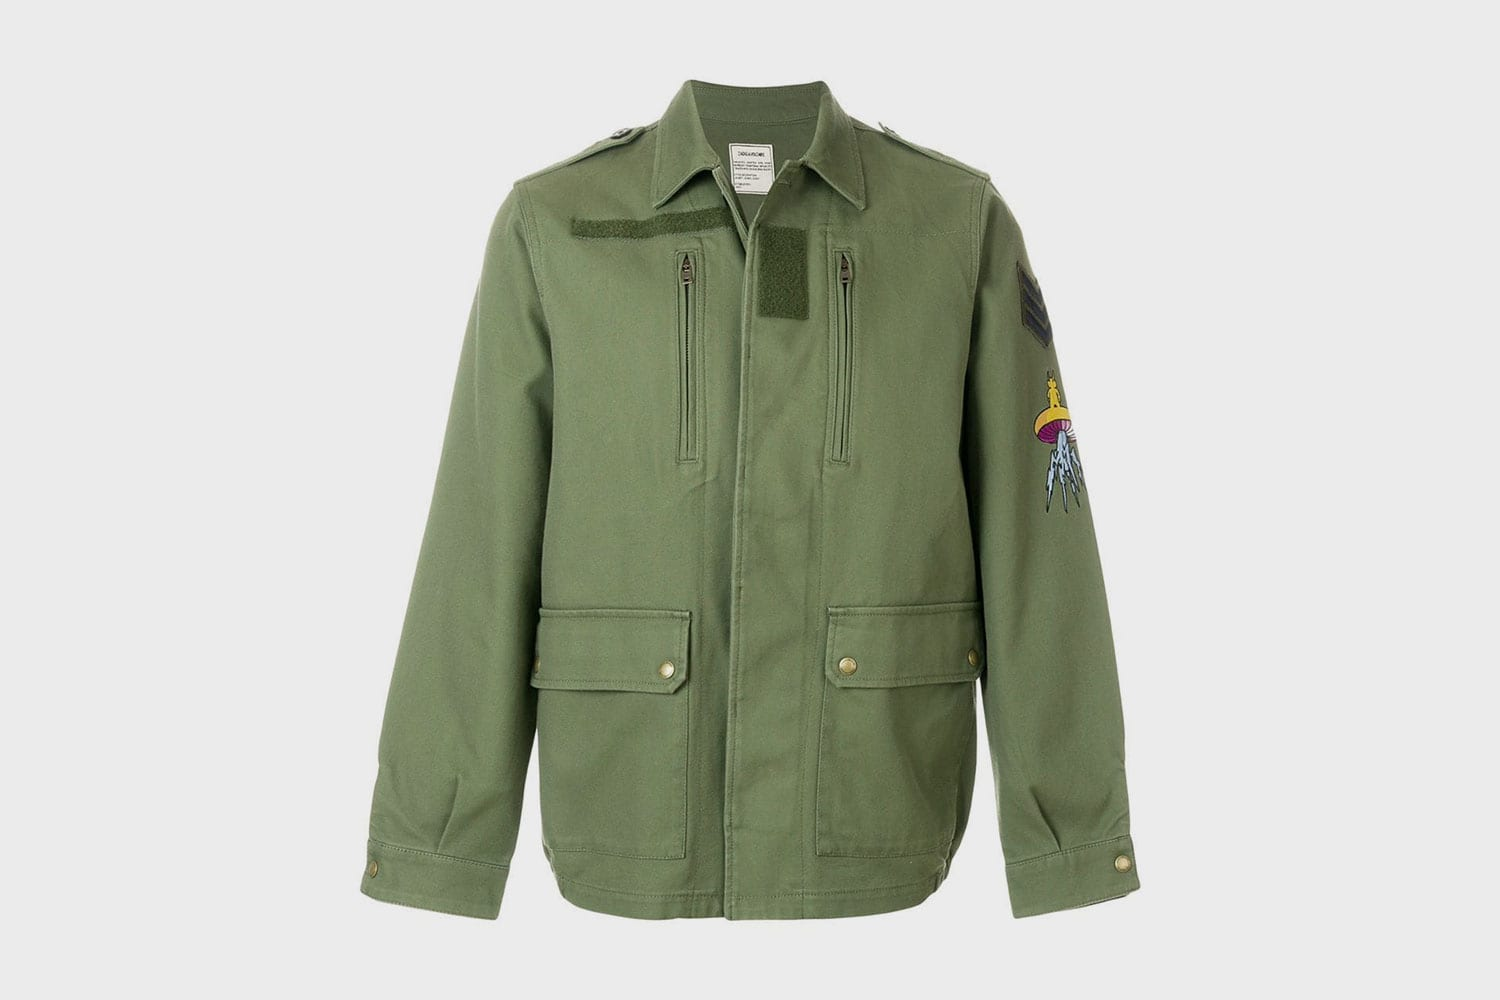 Zadig-&-Voltaire-military-jacket